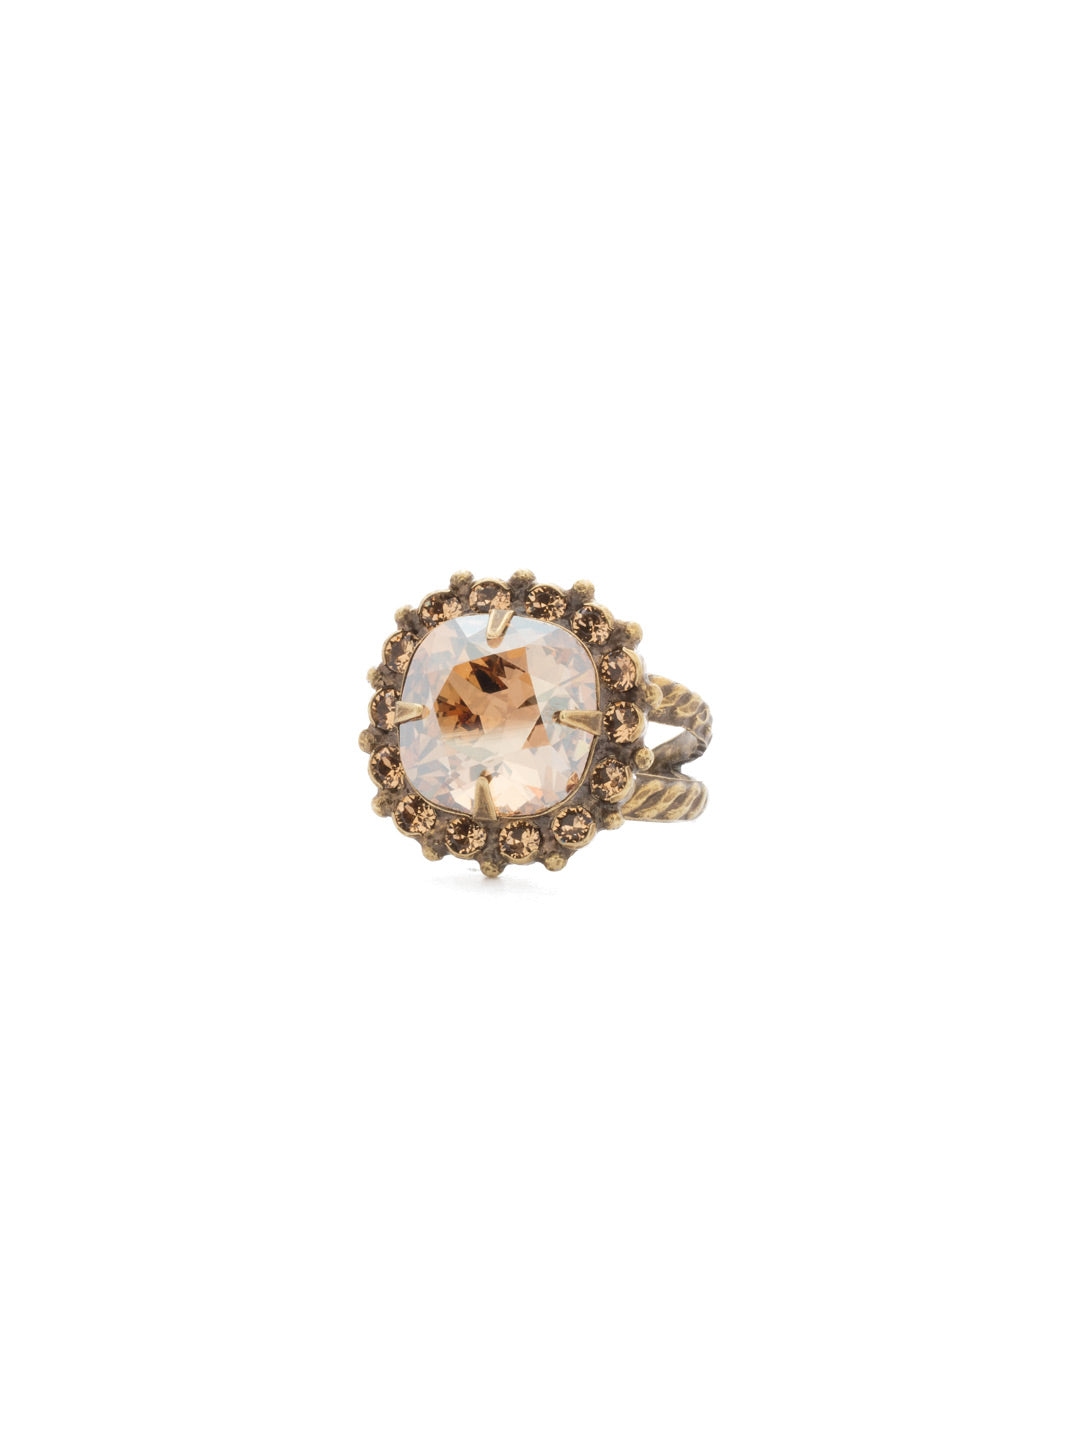 Cushion-Cut Cocktail Ring - RCR112AGNT